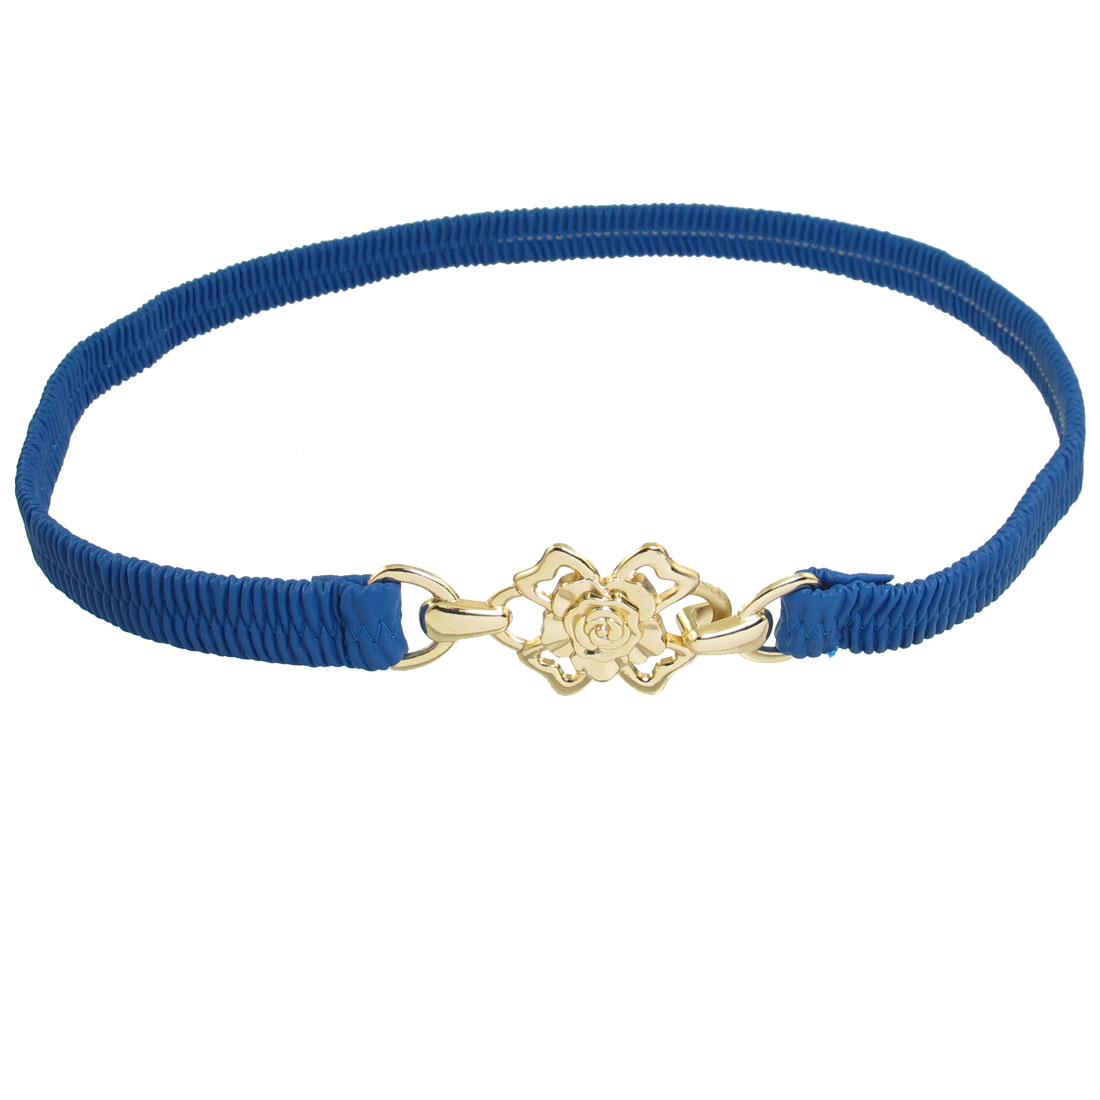 Ladies Gold Tone Floral Shaped Detail Interlock Buckle Blue Stretchy Cinch Belt